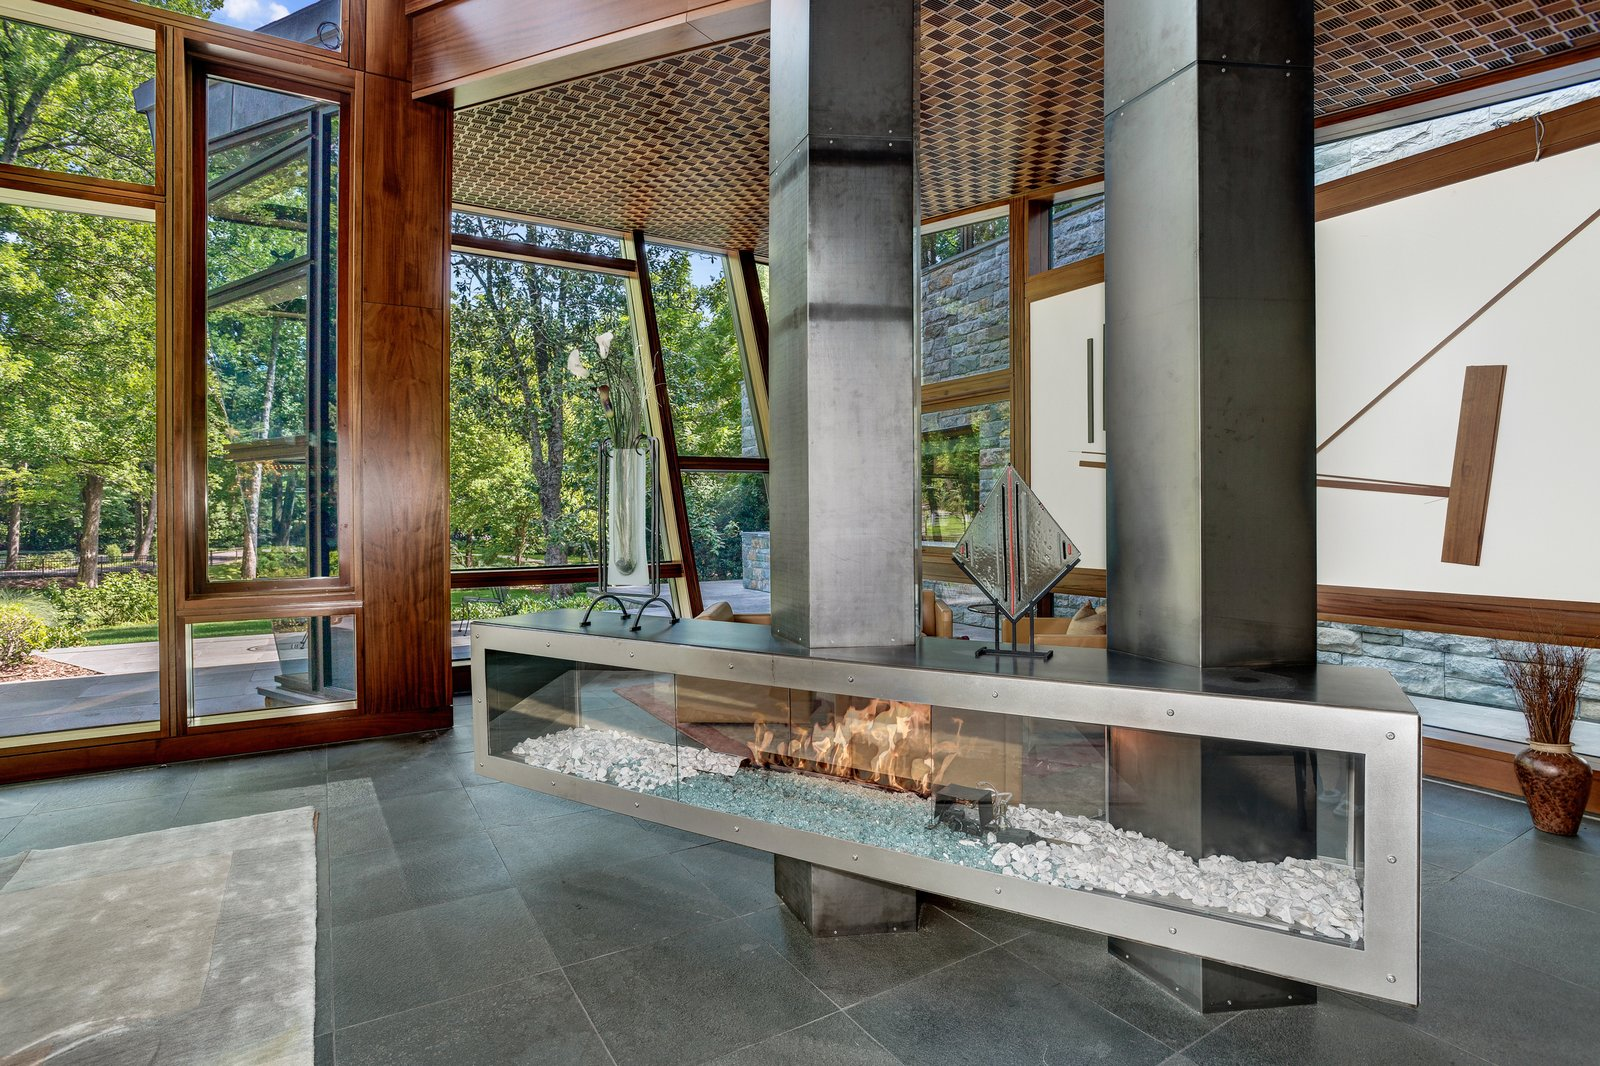 Designed by architect David Jameson in the heart of Bethesda, Maryland, this sculptural residence is filled with bespoke elements that are made up of wood, metal, stone, and glass. The centralized fireplace divides the open living space into two separate seating areas, without closing them off from one another.  97+ Modern Fireplace Ideas by Dwell from Proof That a Modern Fireplace Can Be the Defining Factor of a Space